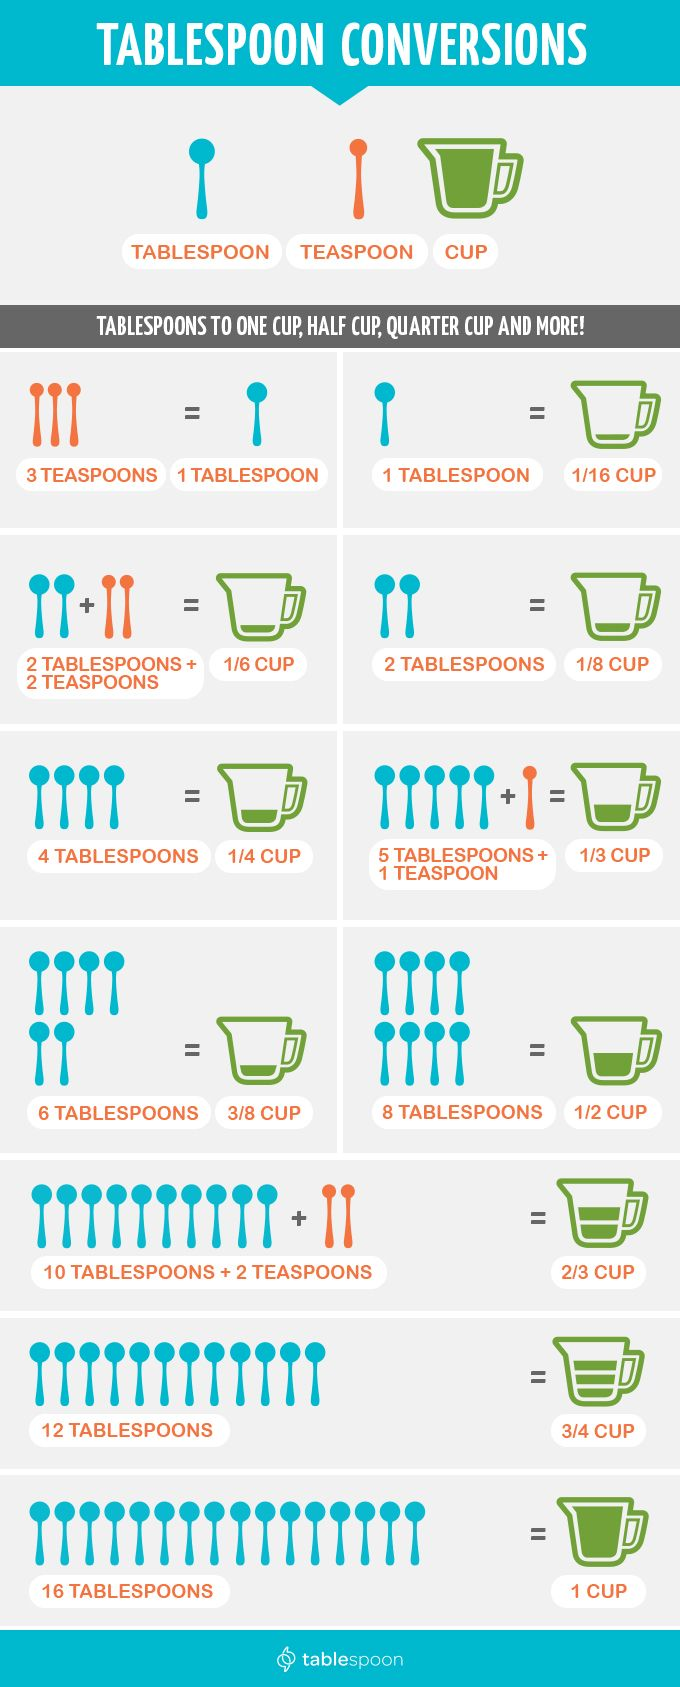 Conversions chart food and kitchens tablespoon conversion chart forumfinder Image collections